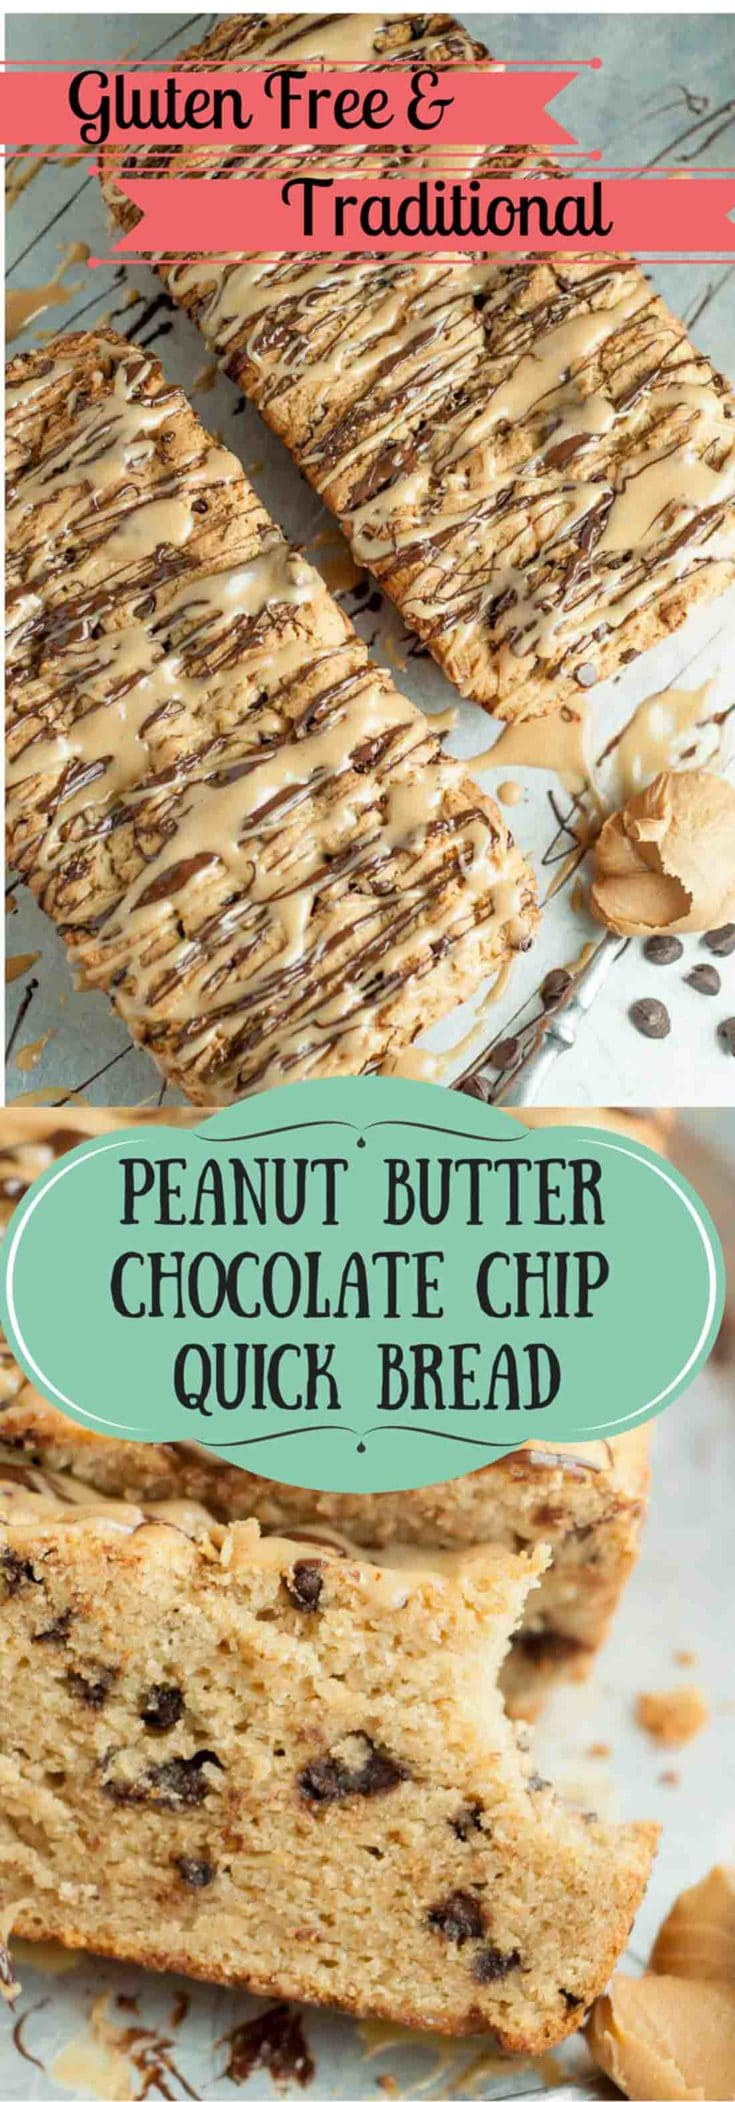 Peanut Butter Chocolate Chip Quick Bread | MamaGourmand